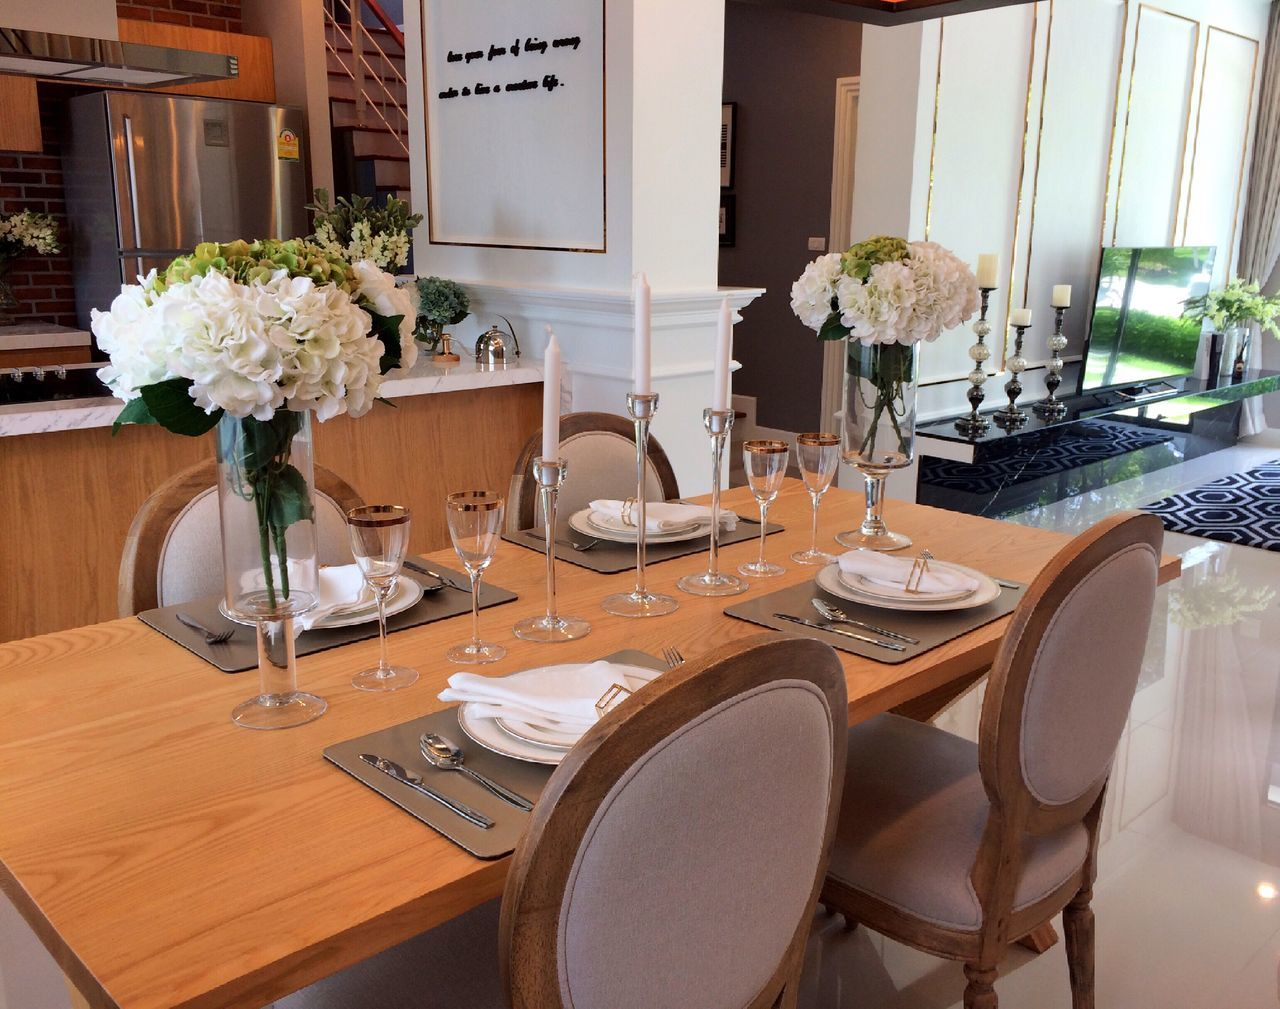 table, flower, vase, chair, place setting, dining table, indoors, plate, absence, bouquet, home interior, no people, dining room, day, cabinet, neat, wineglass